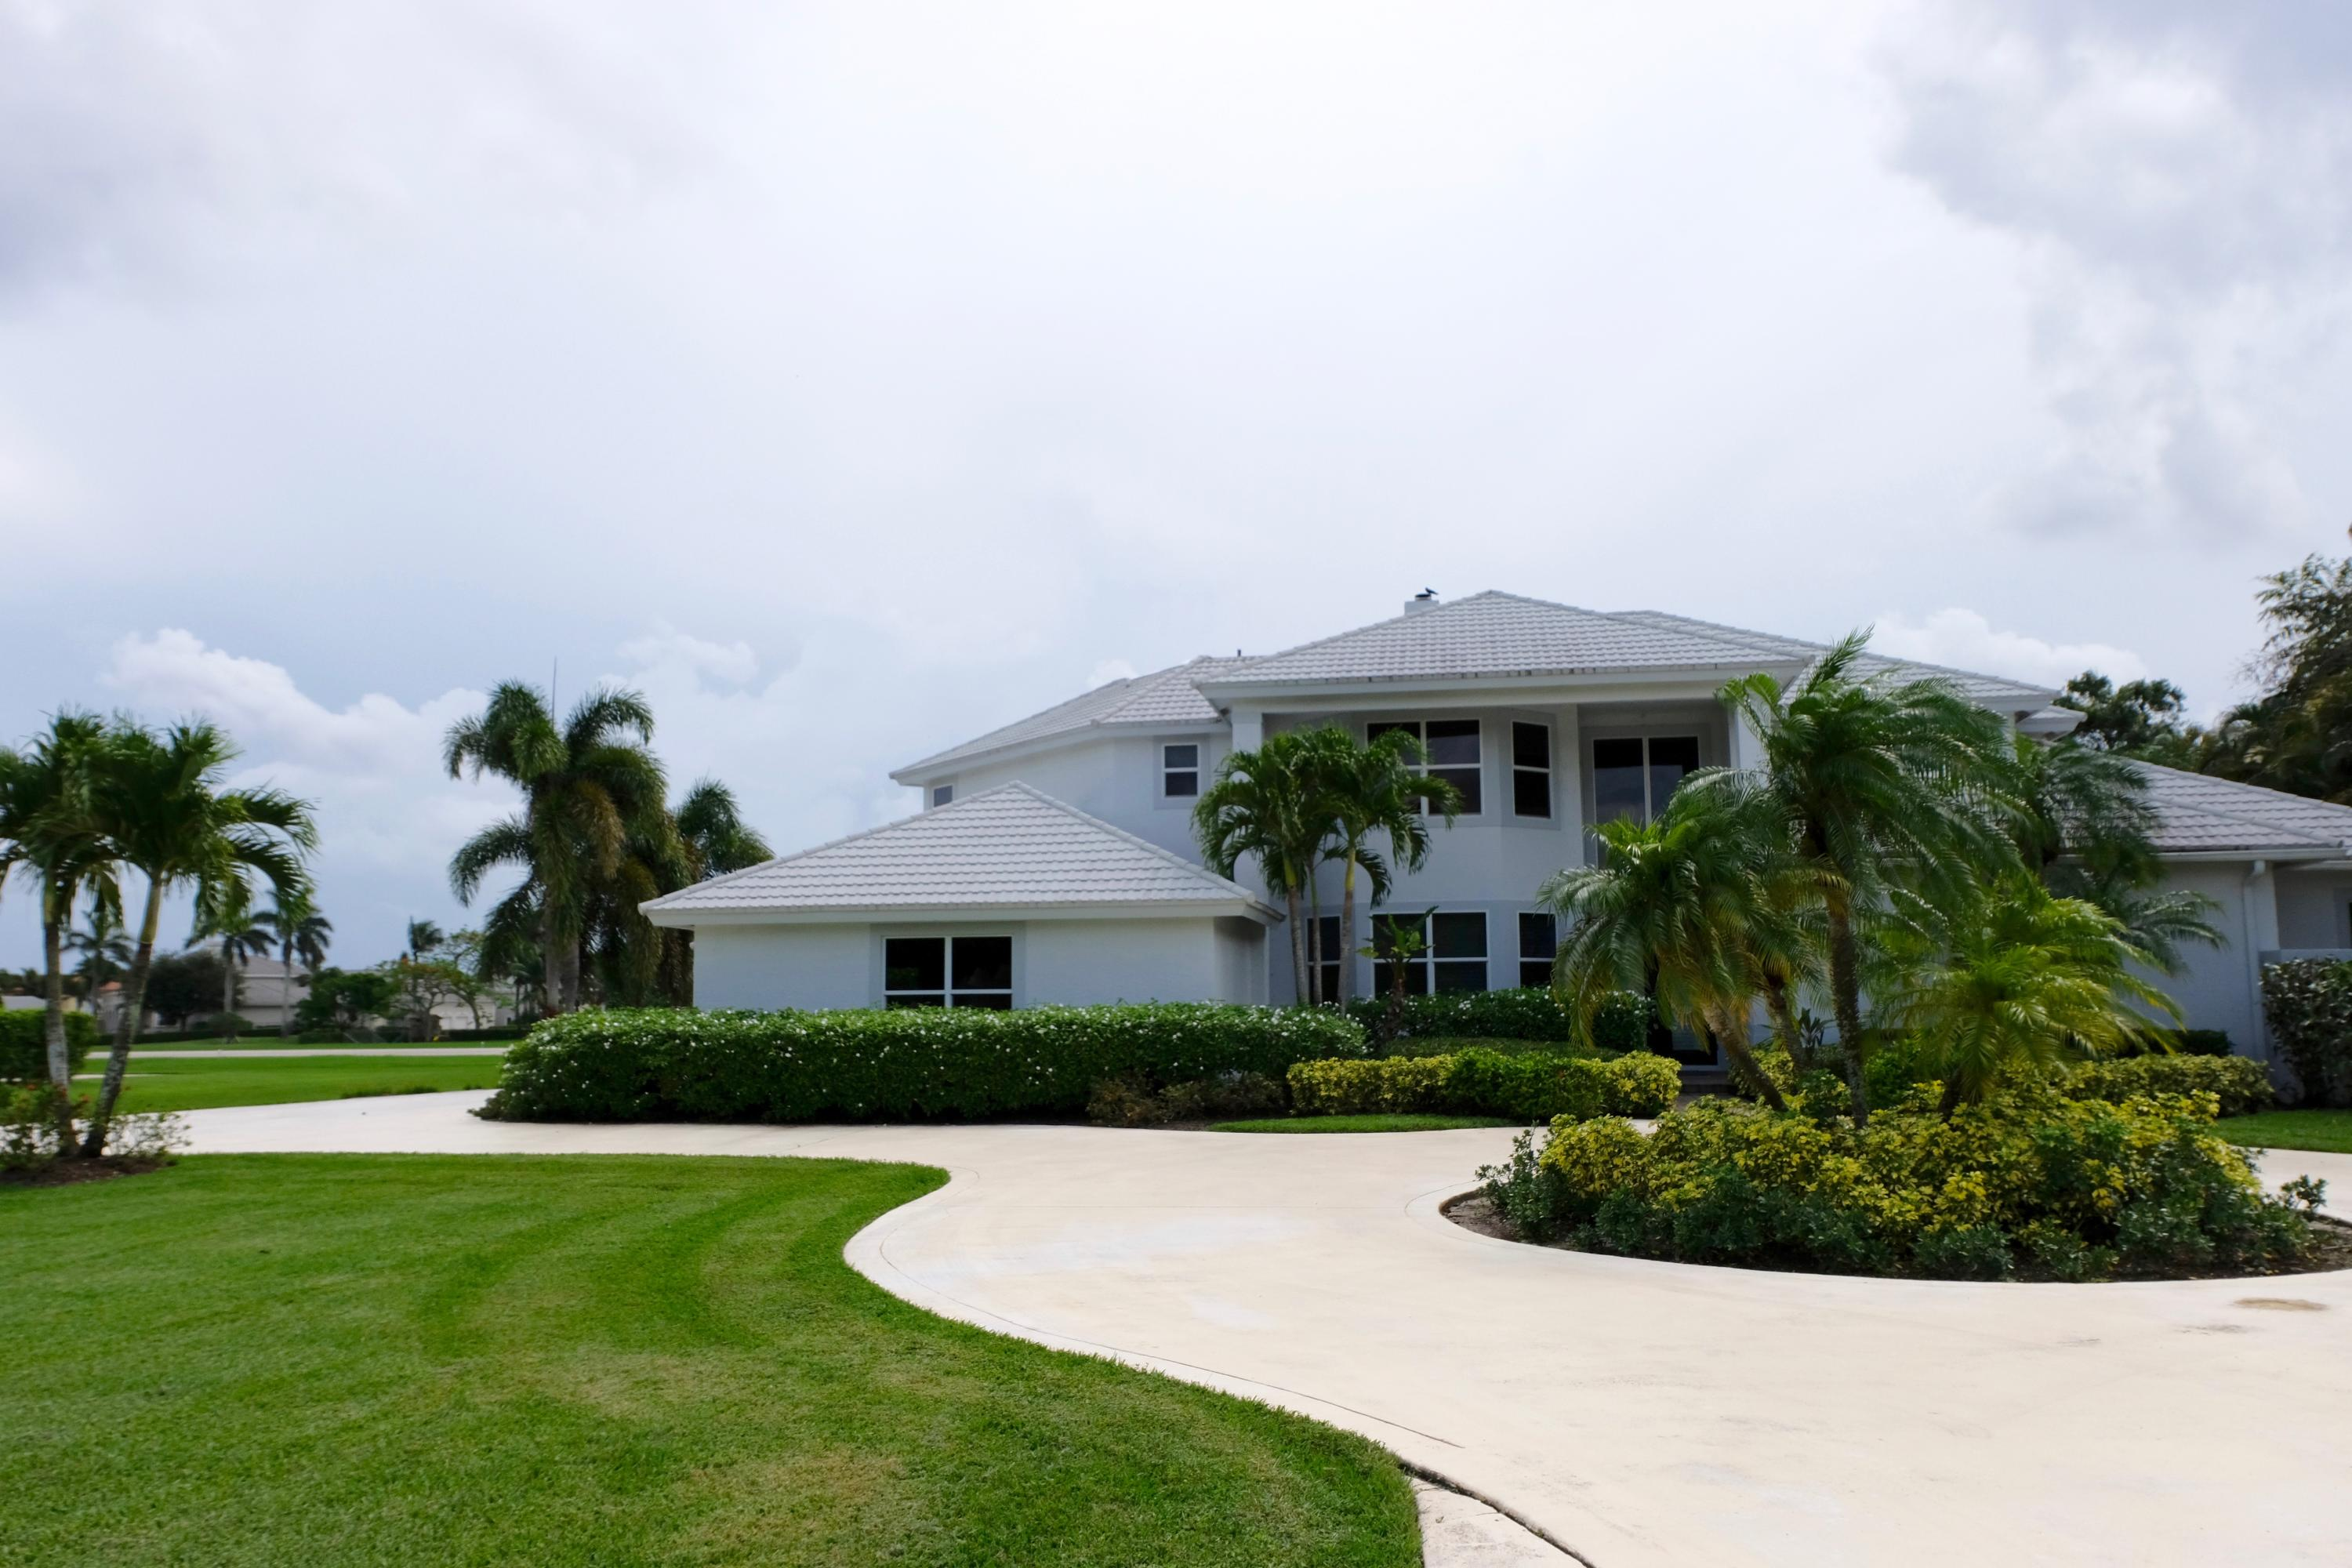 Two-story home located on runway.